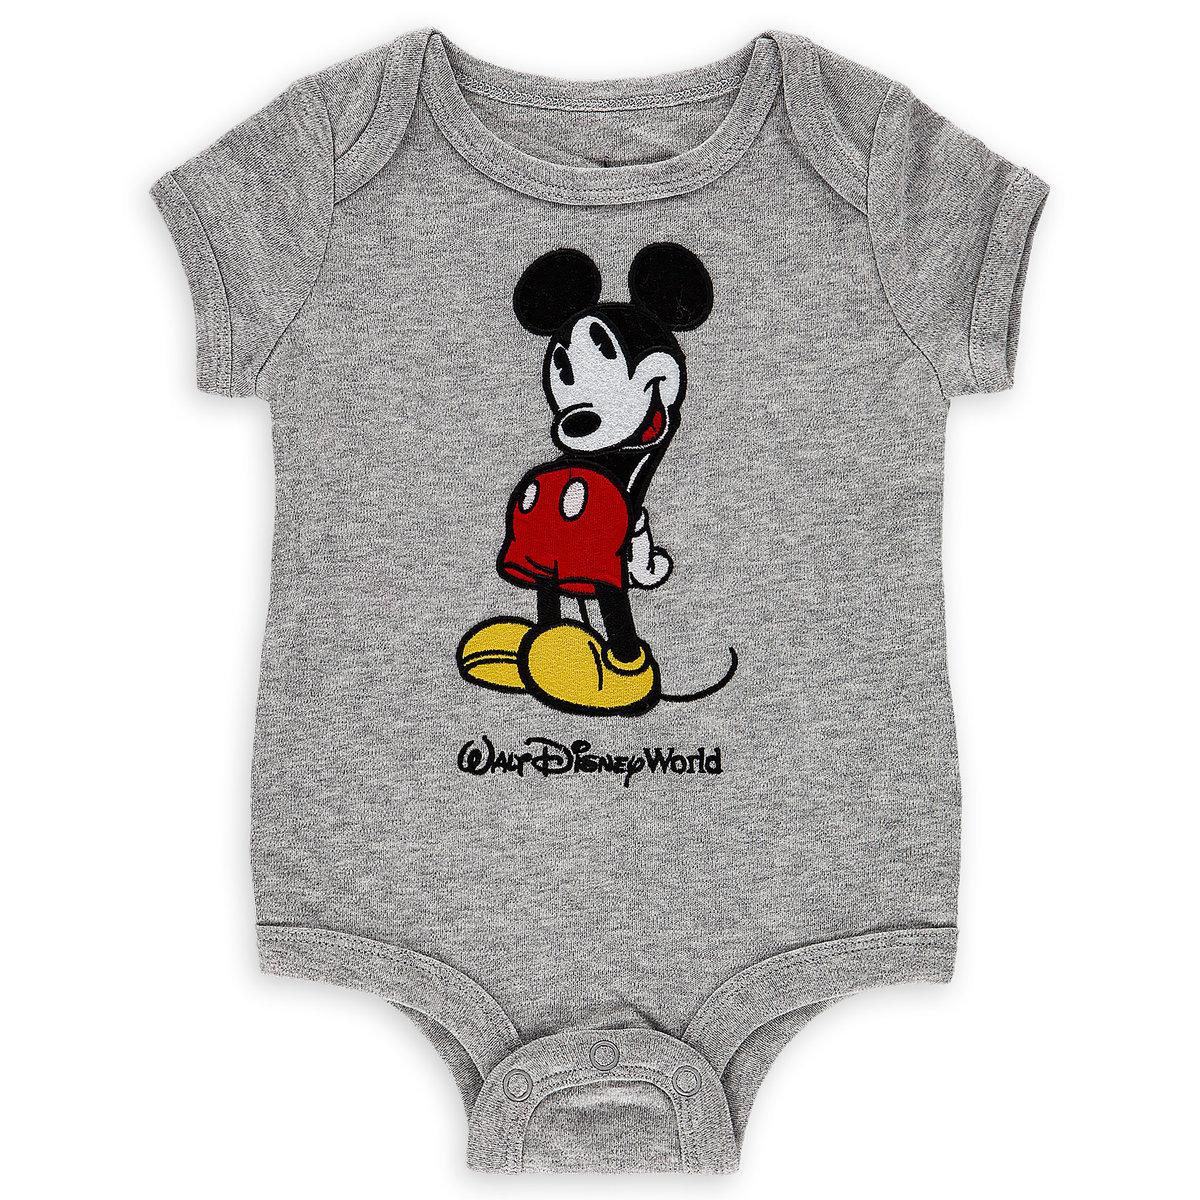 51bdf4c6c Product Image of Mickey Mouse Bodysuit for Baby - Walt Disney World - Gray  # 1